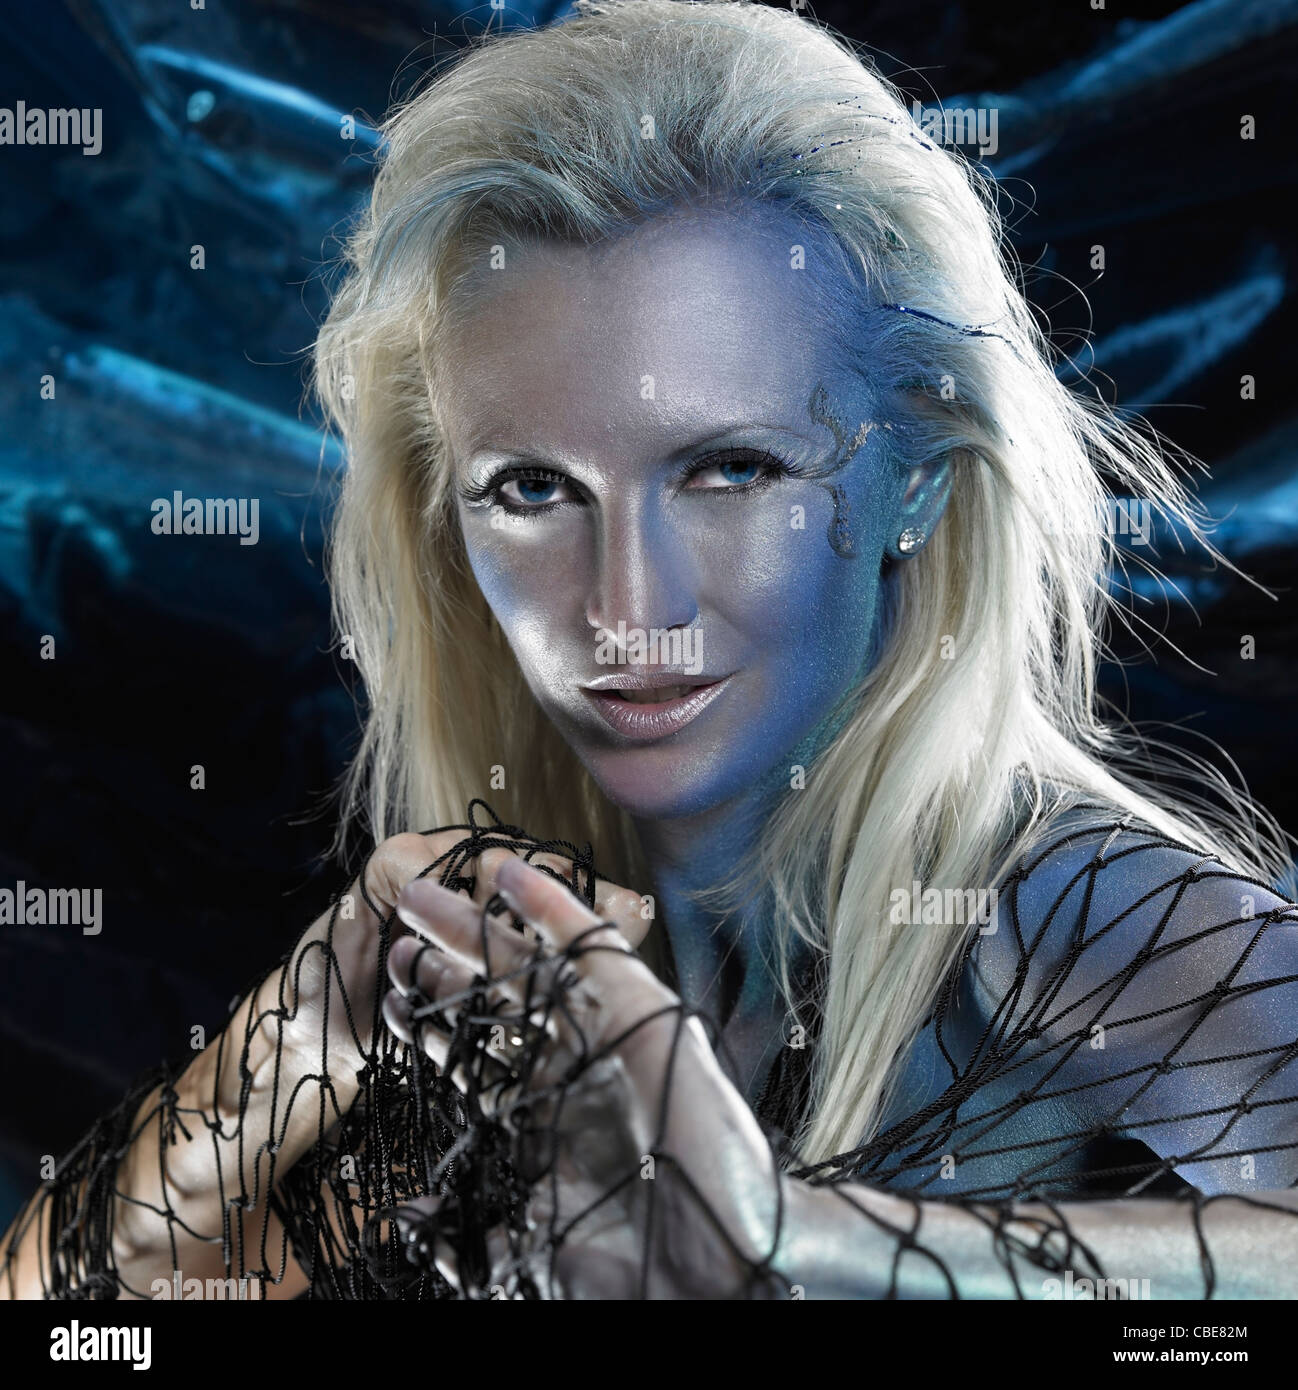 mystic mermaid theme showing the portrait of a bodypainted woman with black fishing net, studio photography in black - Stock Image